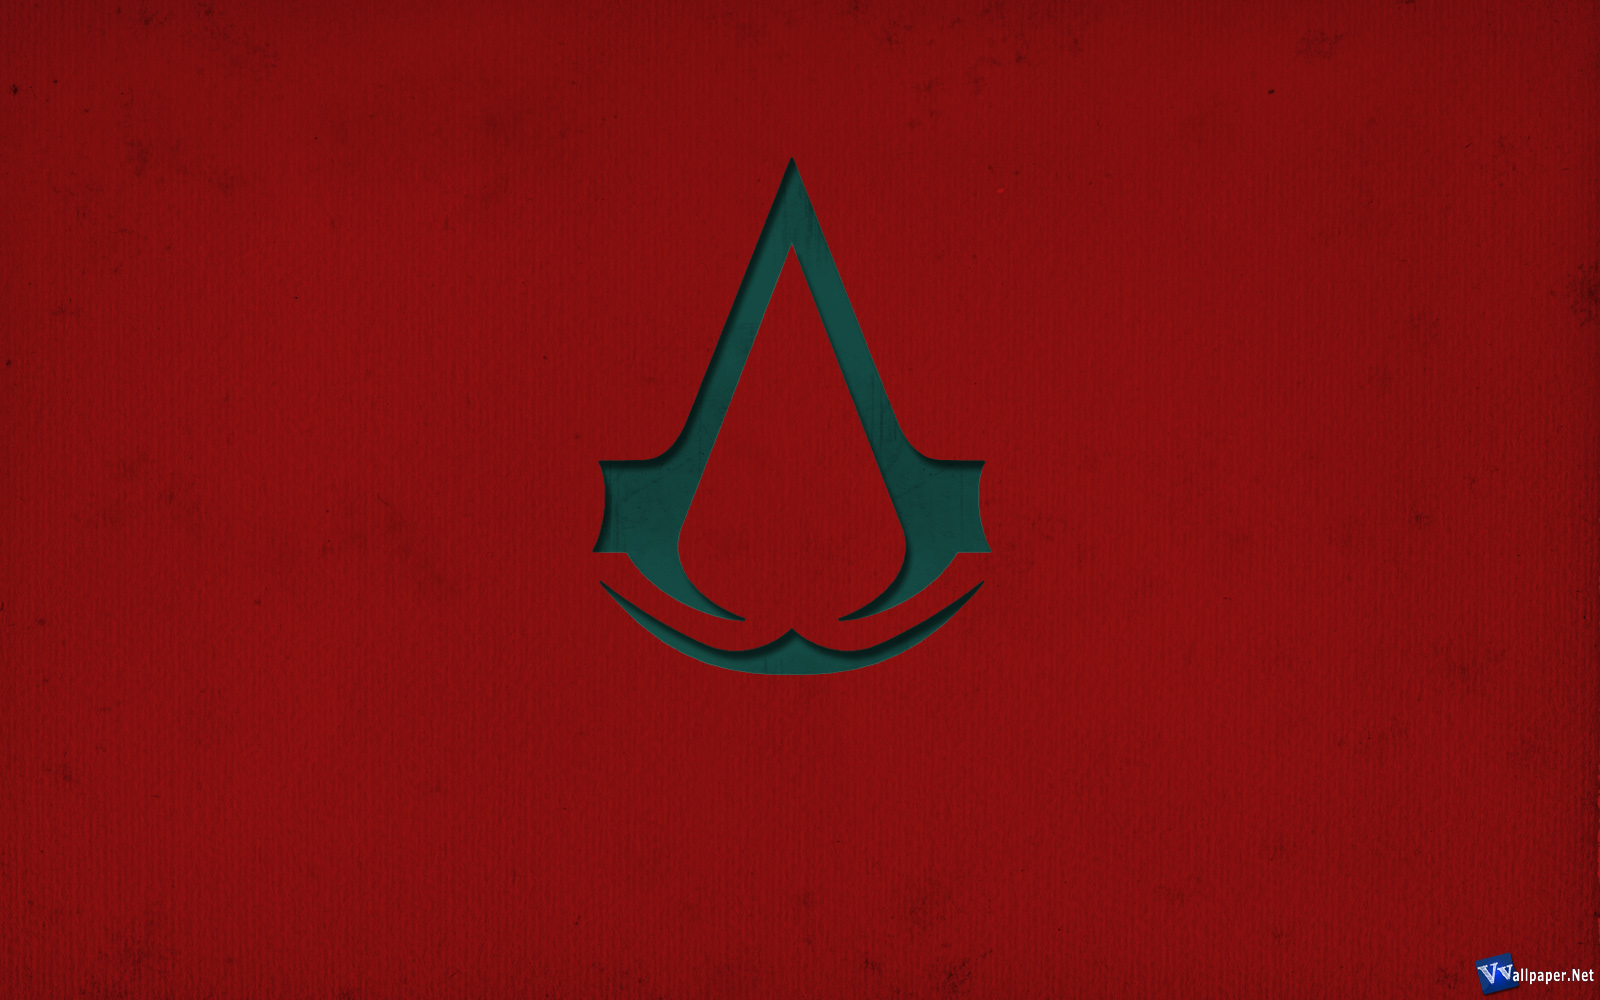 http://4.bp.blogspot.com/-QhDdsRclV54/Too8SoNFypI/AAAAAAAADVo/aWArxx_w7E4/s1600/Assassins_Creed_Logo_HD_Wallpaper_GameWallBase.Com.jpg.jpg